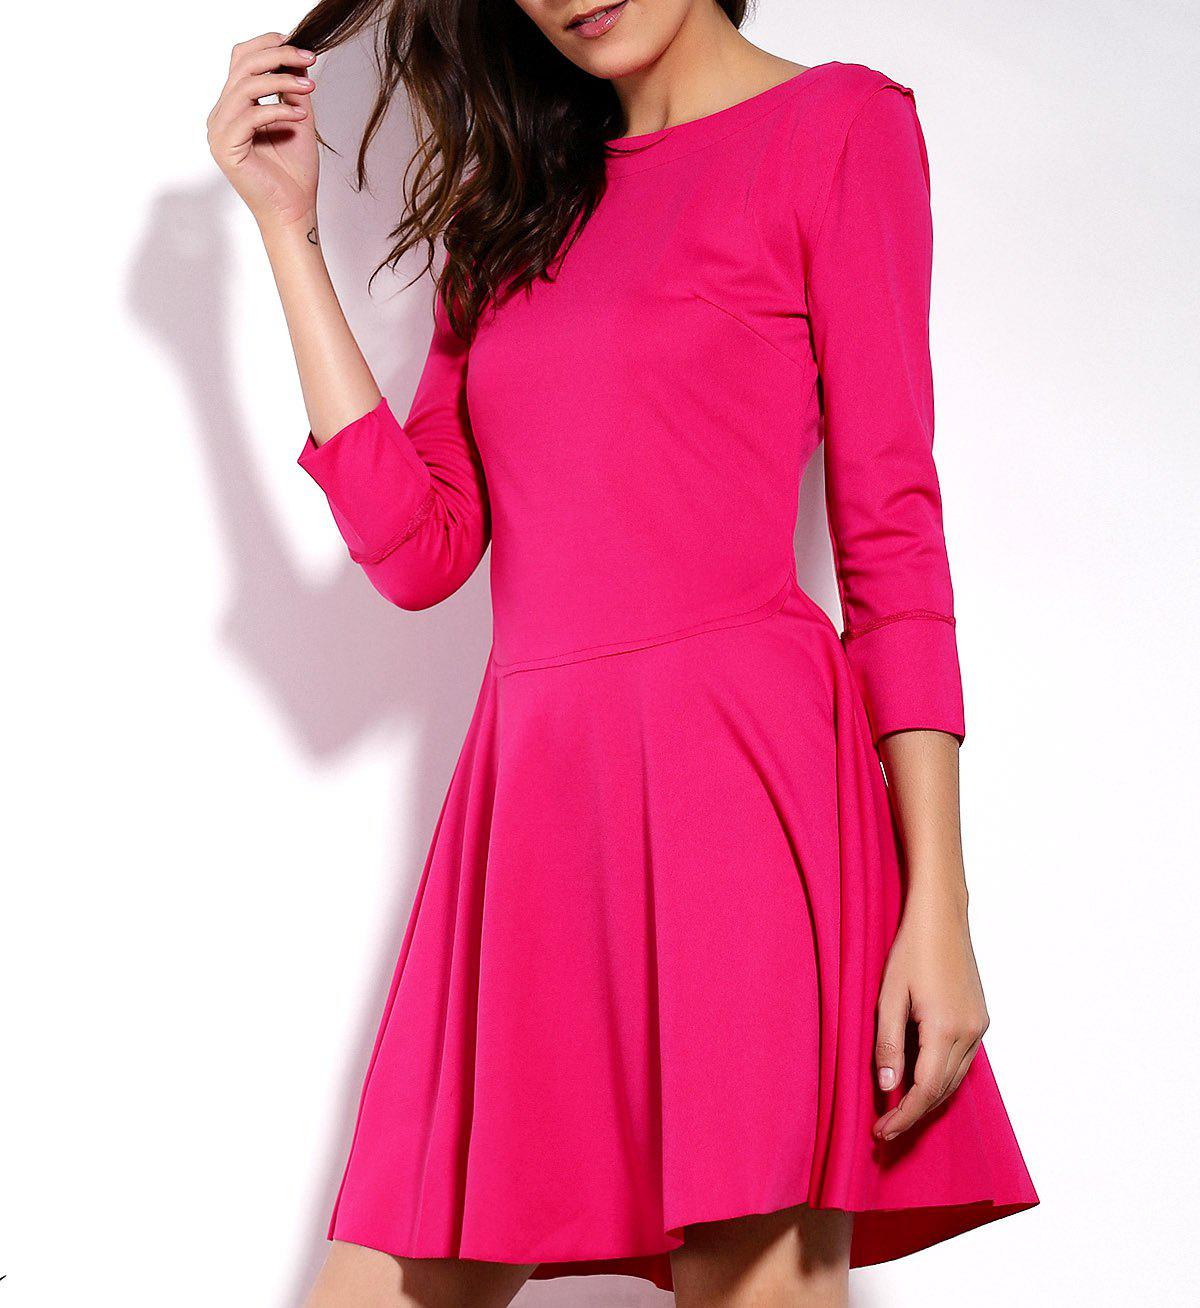 Fashionable 3/4 Sleeve Round Collar Slimming Solid Color Women's Dress - ROSE XL